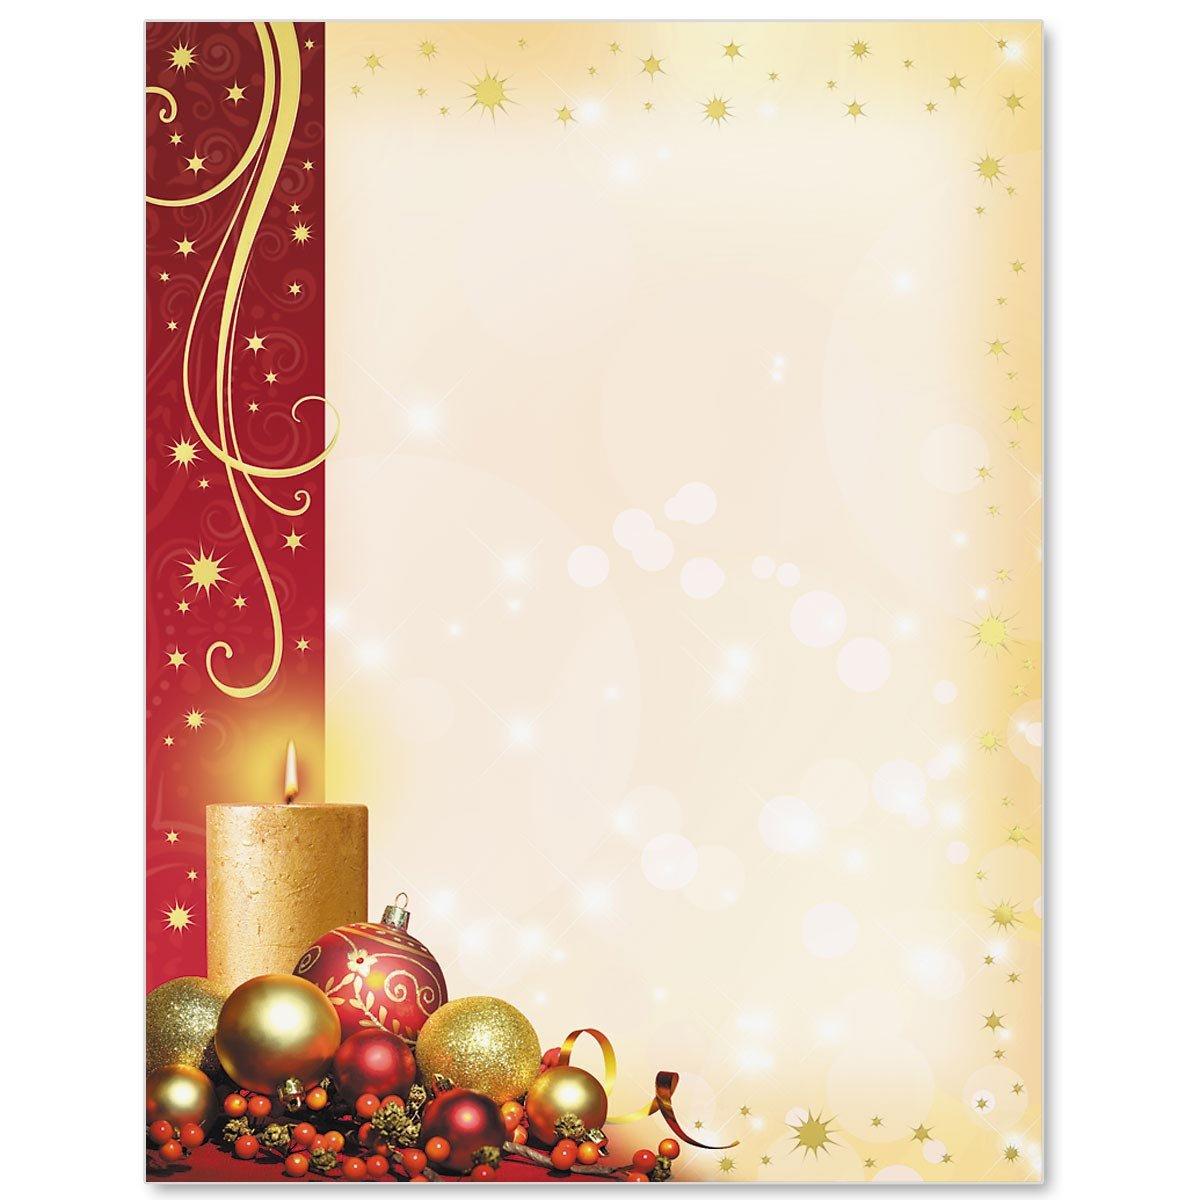 Gold Foil Enchanted Christmas Specialty Border Papers, 28 lb, 8.5 inches x 11 inches, 50 Count PaperDirect